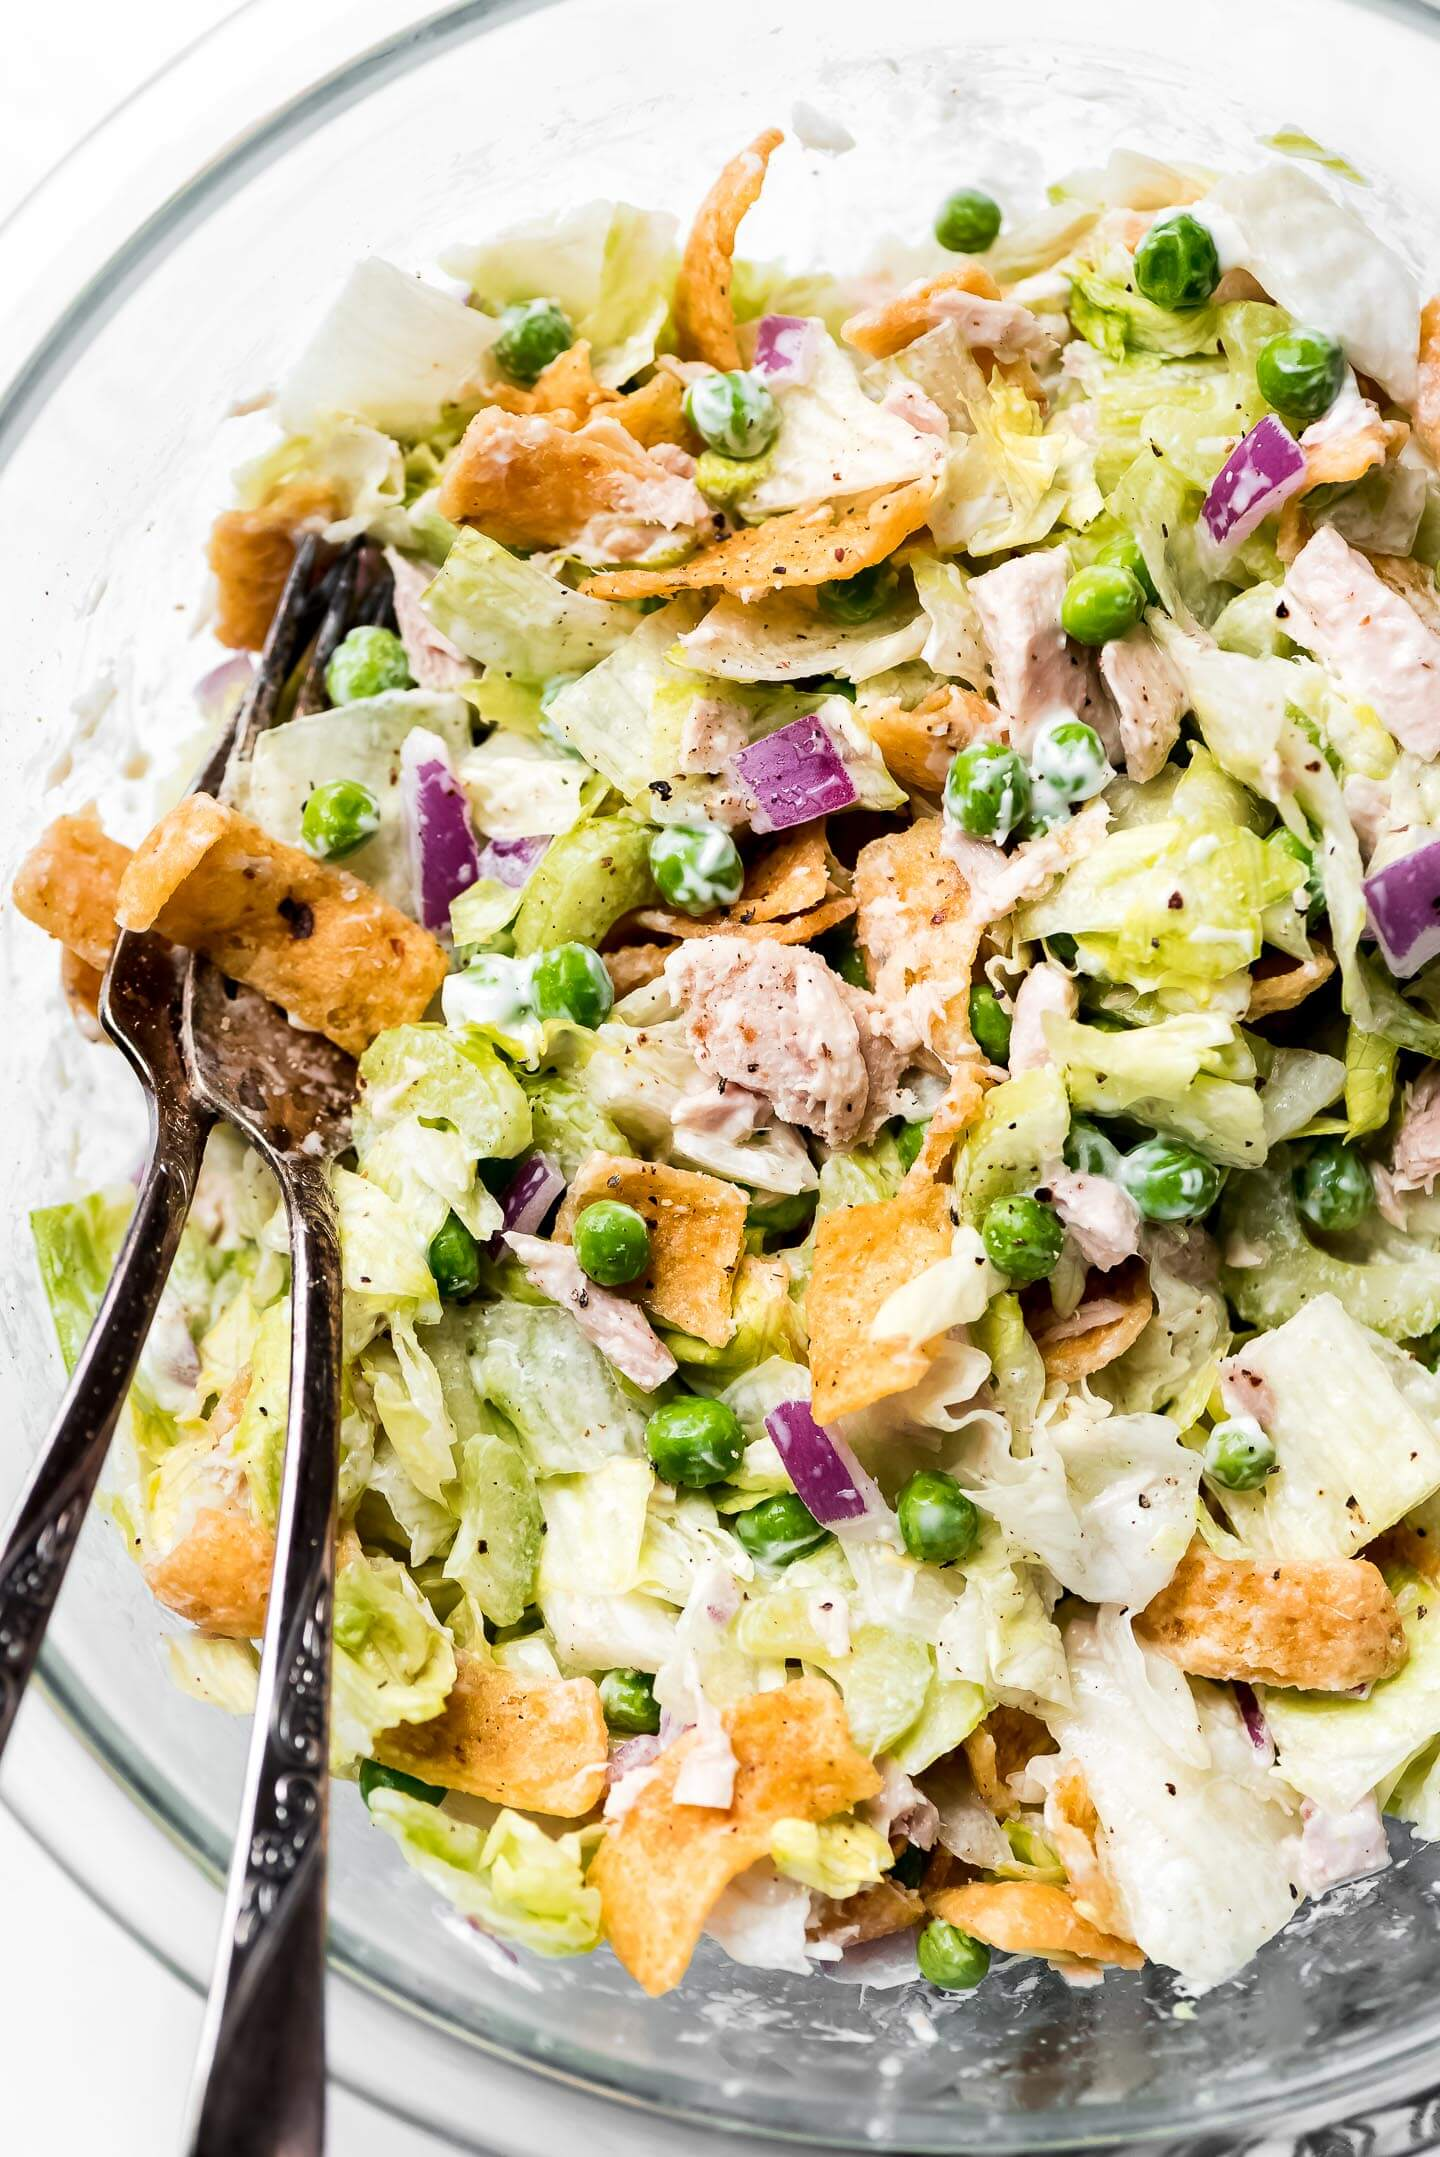 A close up shot of Tuna Chopped Salad in a glass mixing bowl with Fritos, celery, peas, tuna, red onion, and tuna fish.